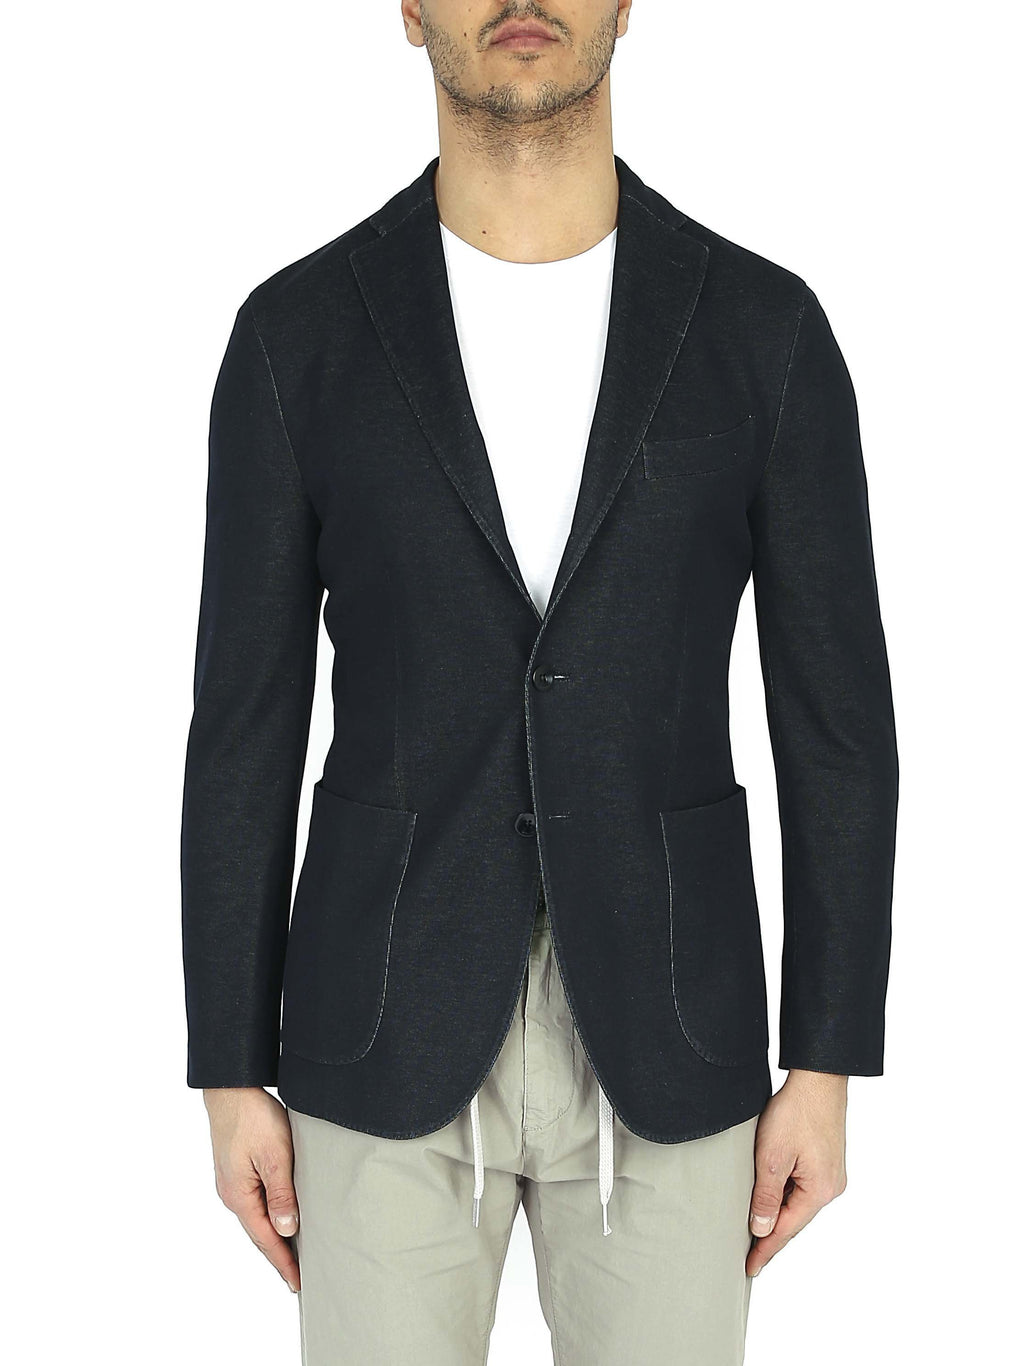 BOGLIOLI Single-breasted blazer in three-button jersey